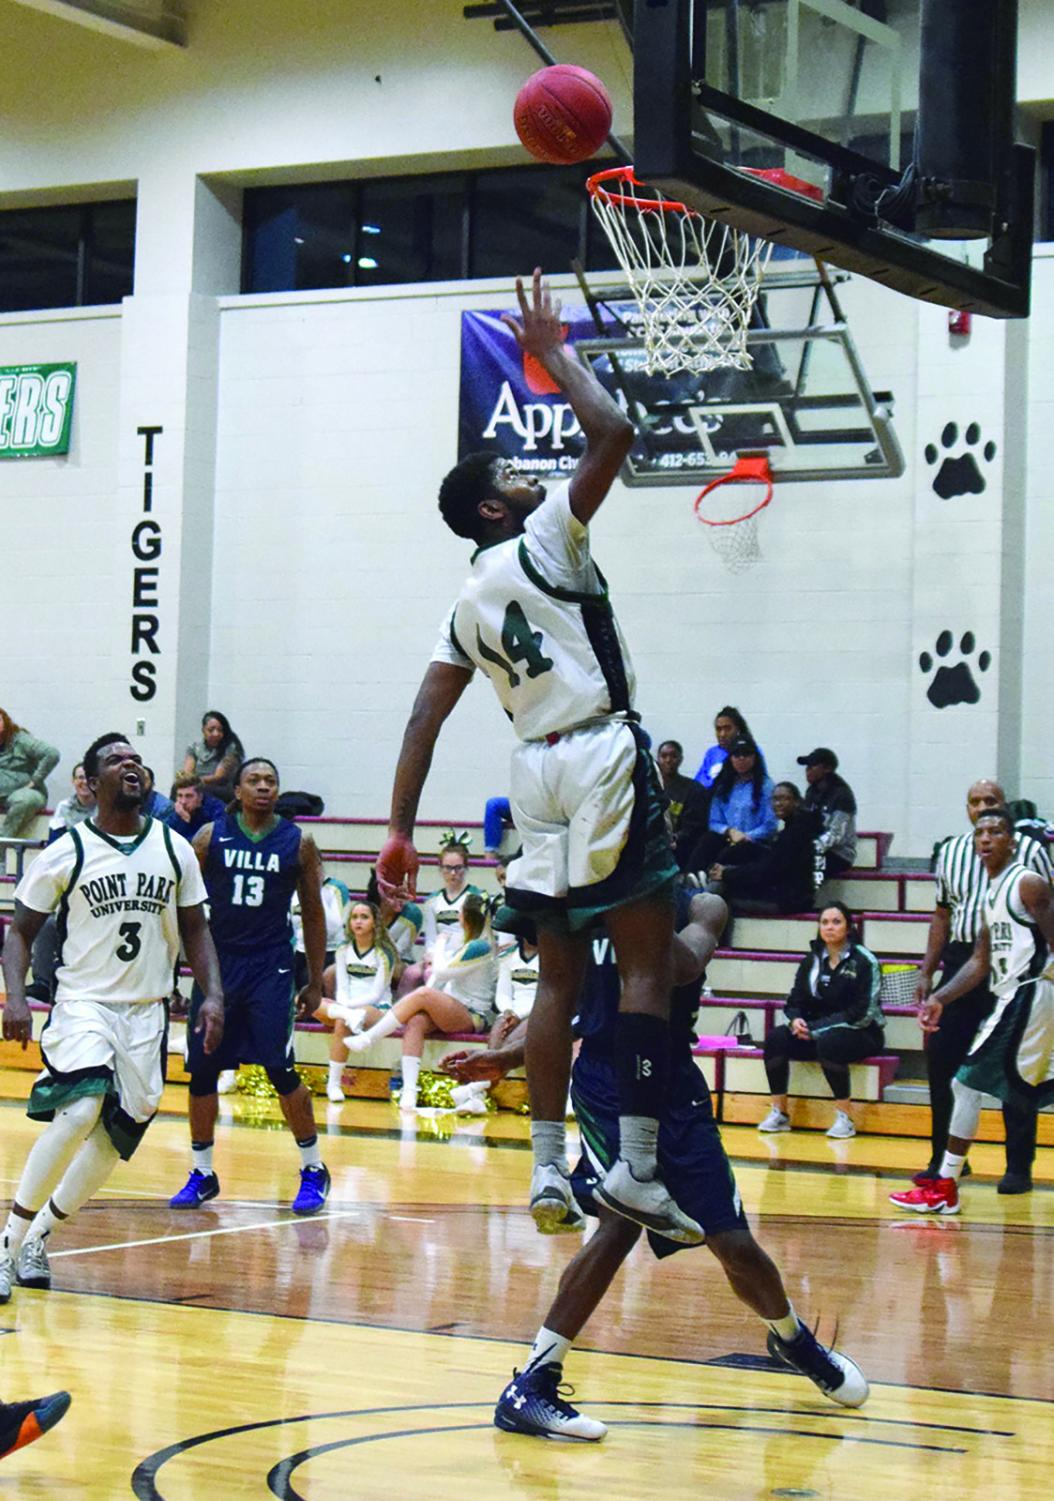 Junior guard Asim Pleas attempts a layup in a game against Villa Maria last season. The men won their season opener on Oct. 31 against Wilberforce.